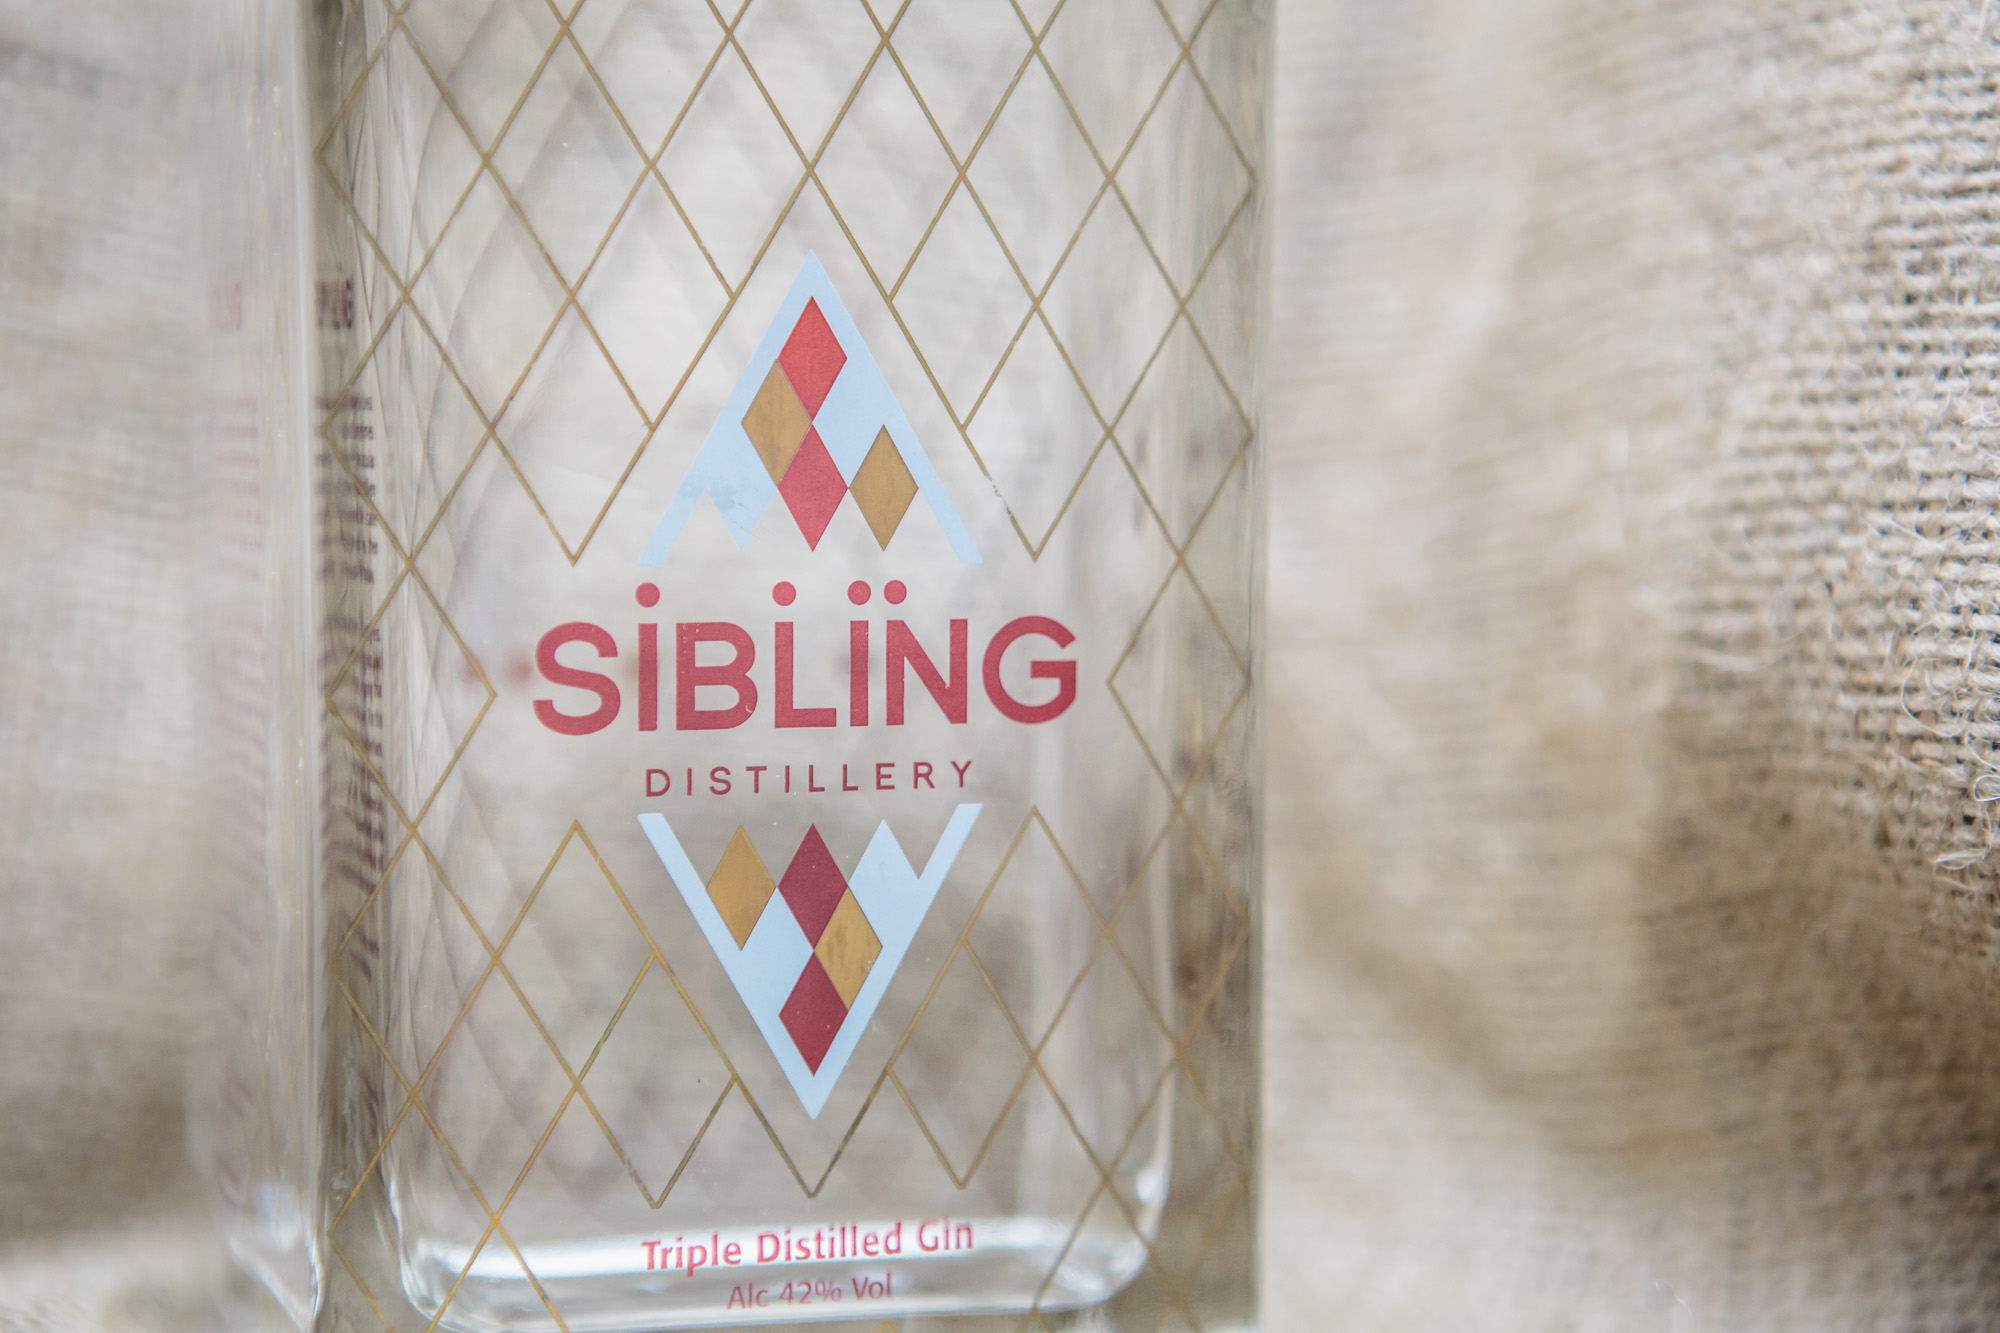 ASA Bans makers of Sibling Gin from appearing in their own ads